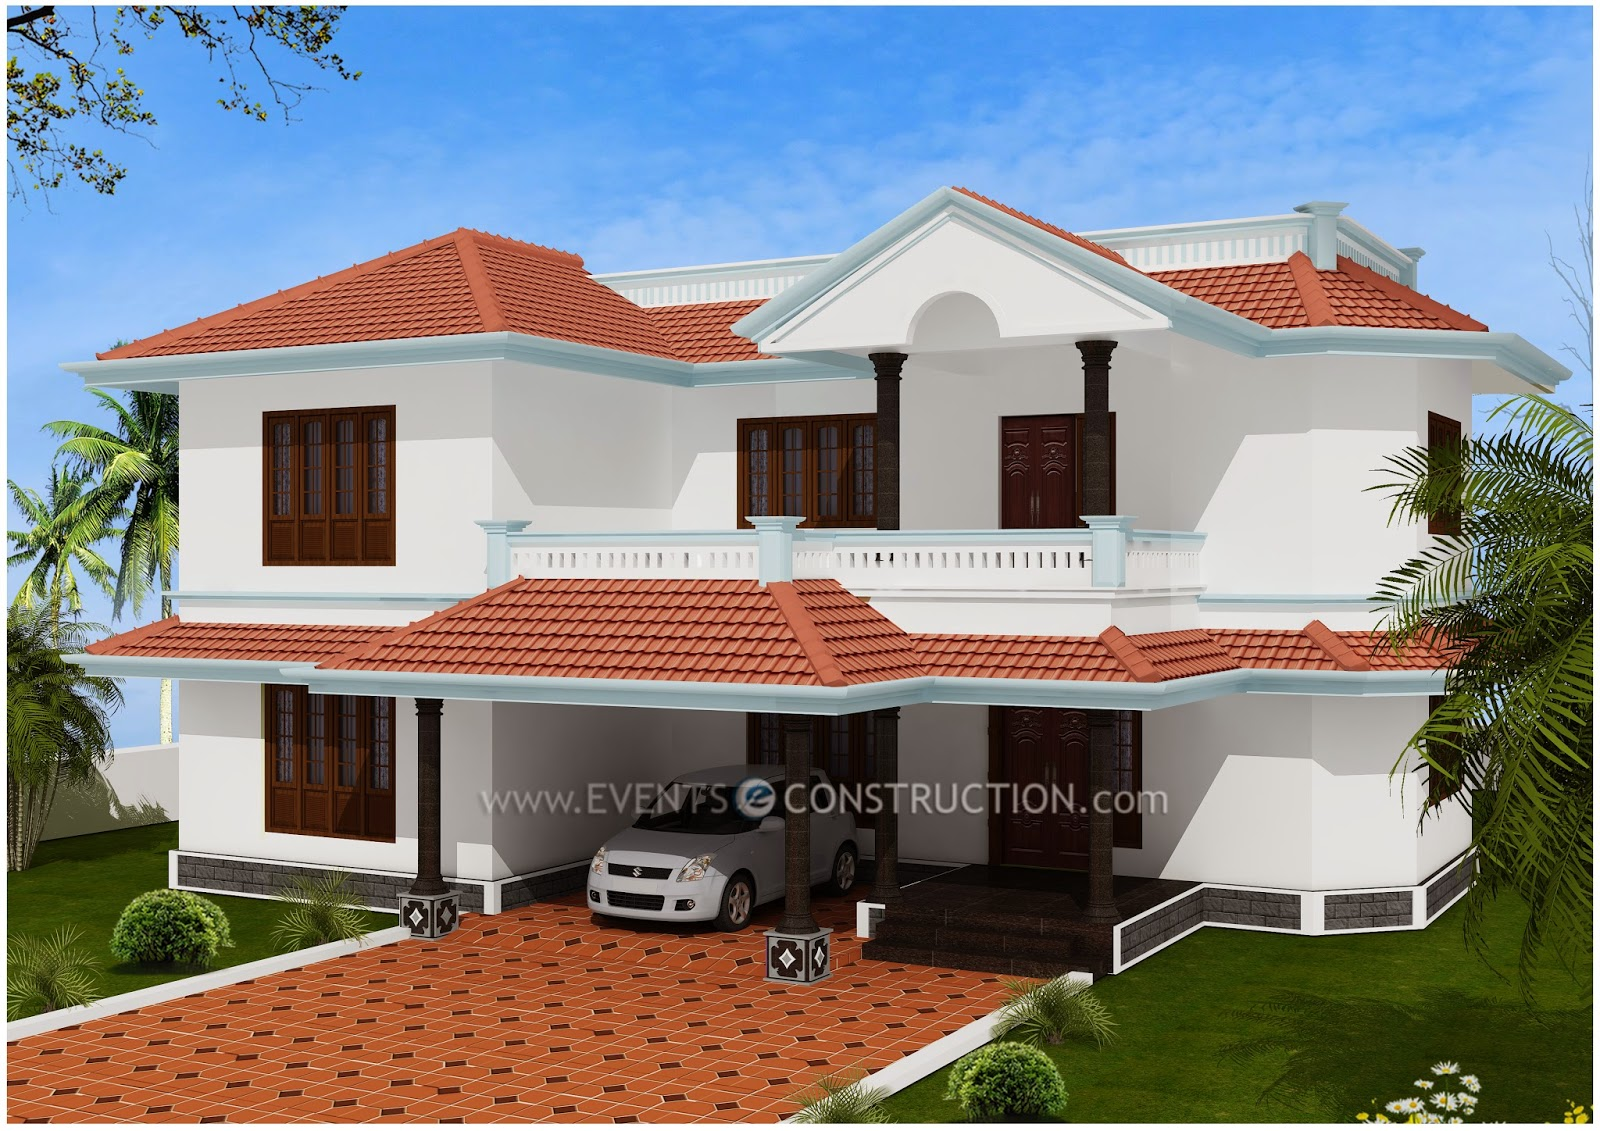 Evens construction pvt ltd simple kerala house design for Kerala house plans 2014